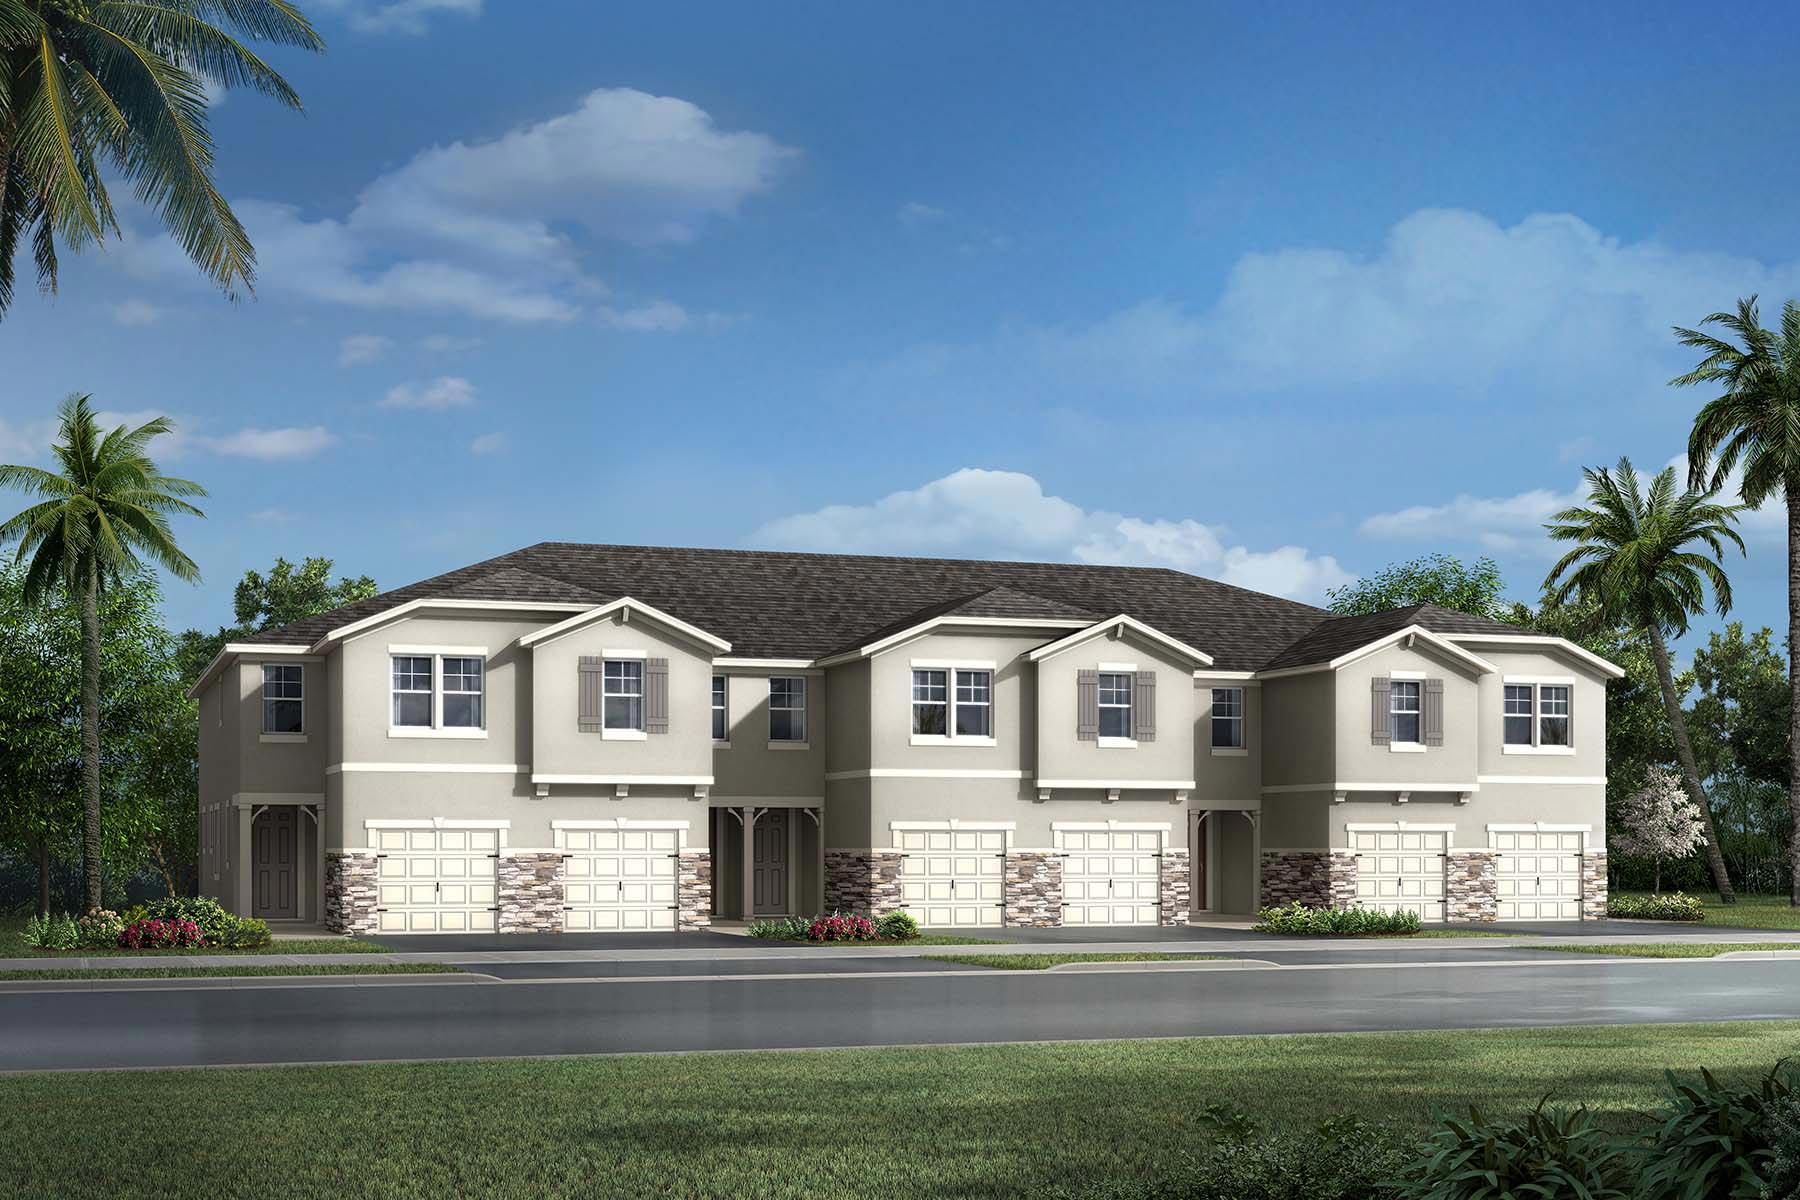 Ormond Plan TownHomes at Volanti in Wesley Chapel Florida by Mattamy Homes